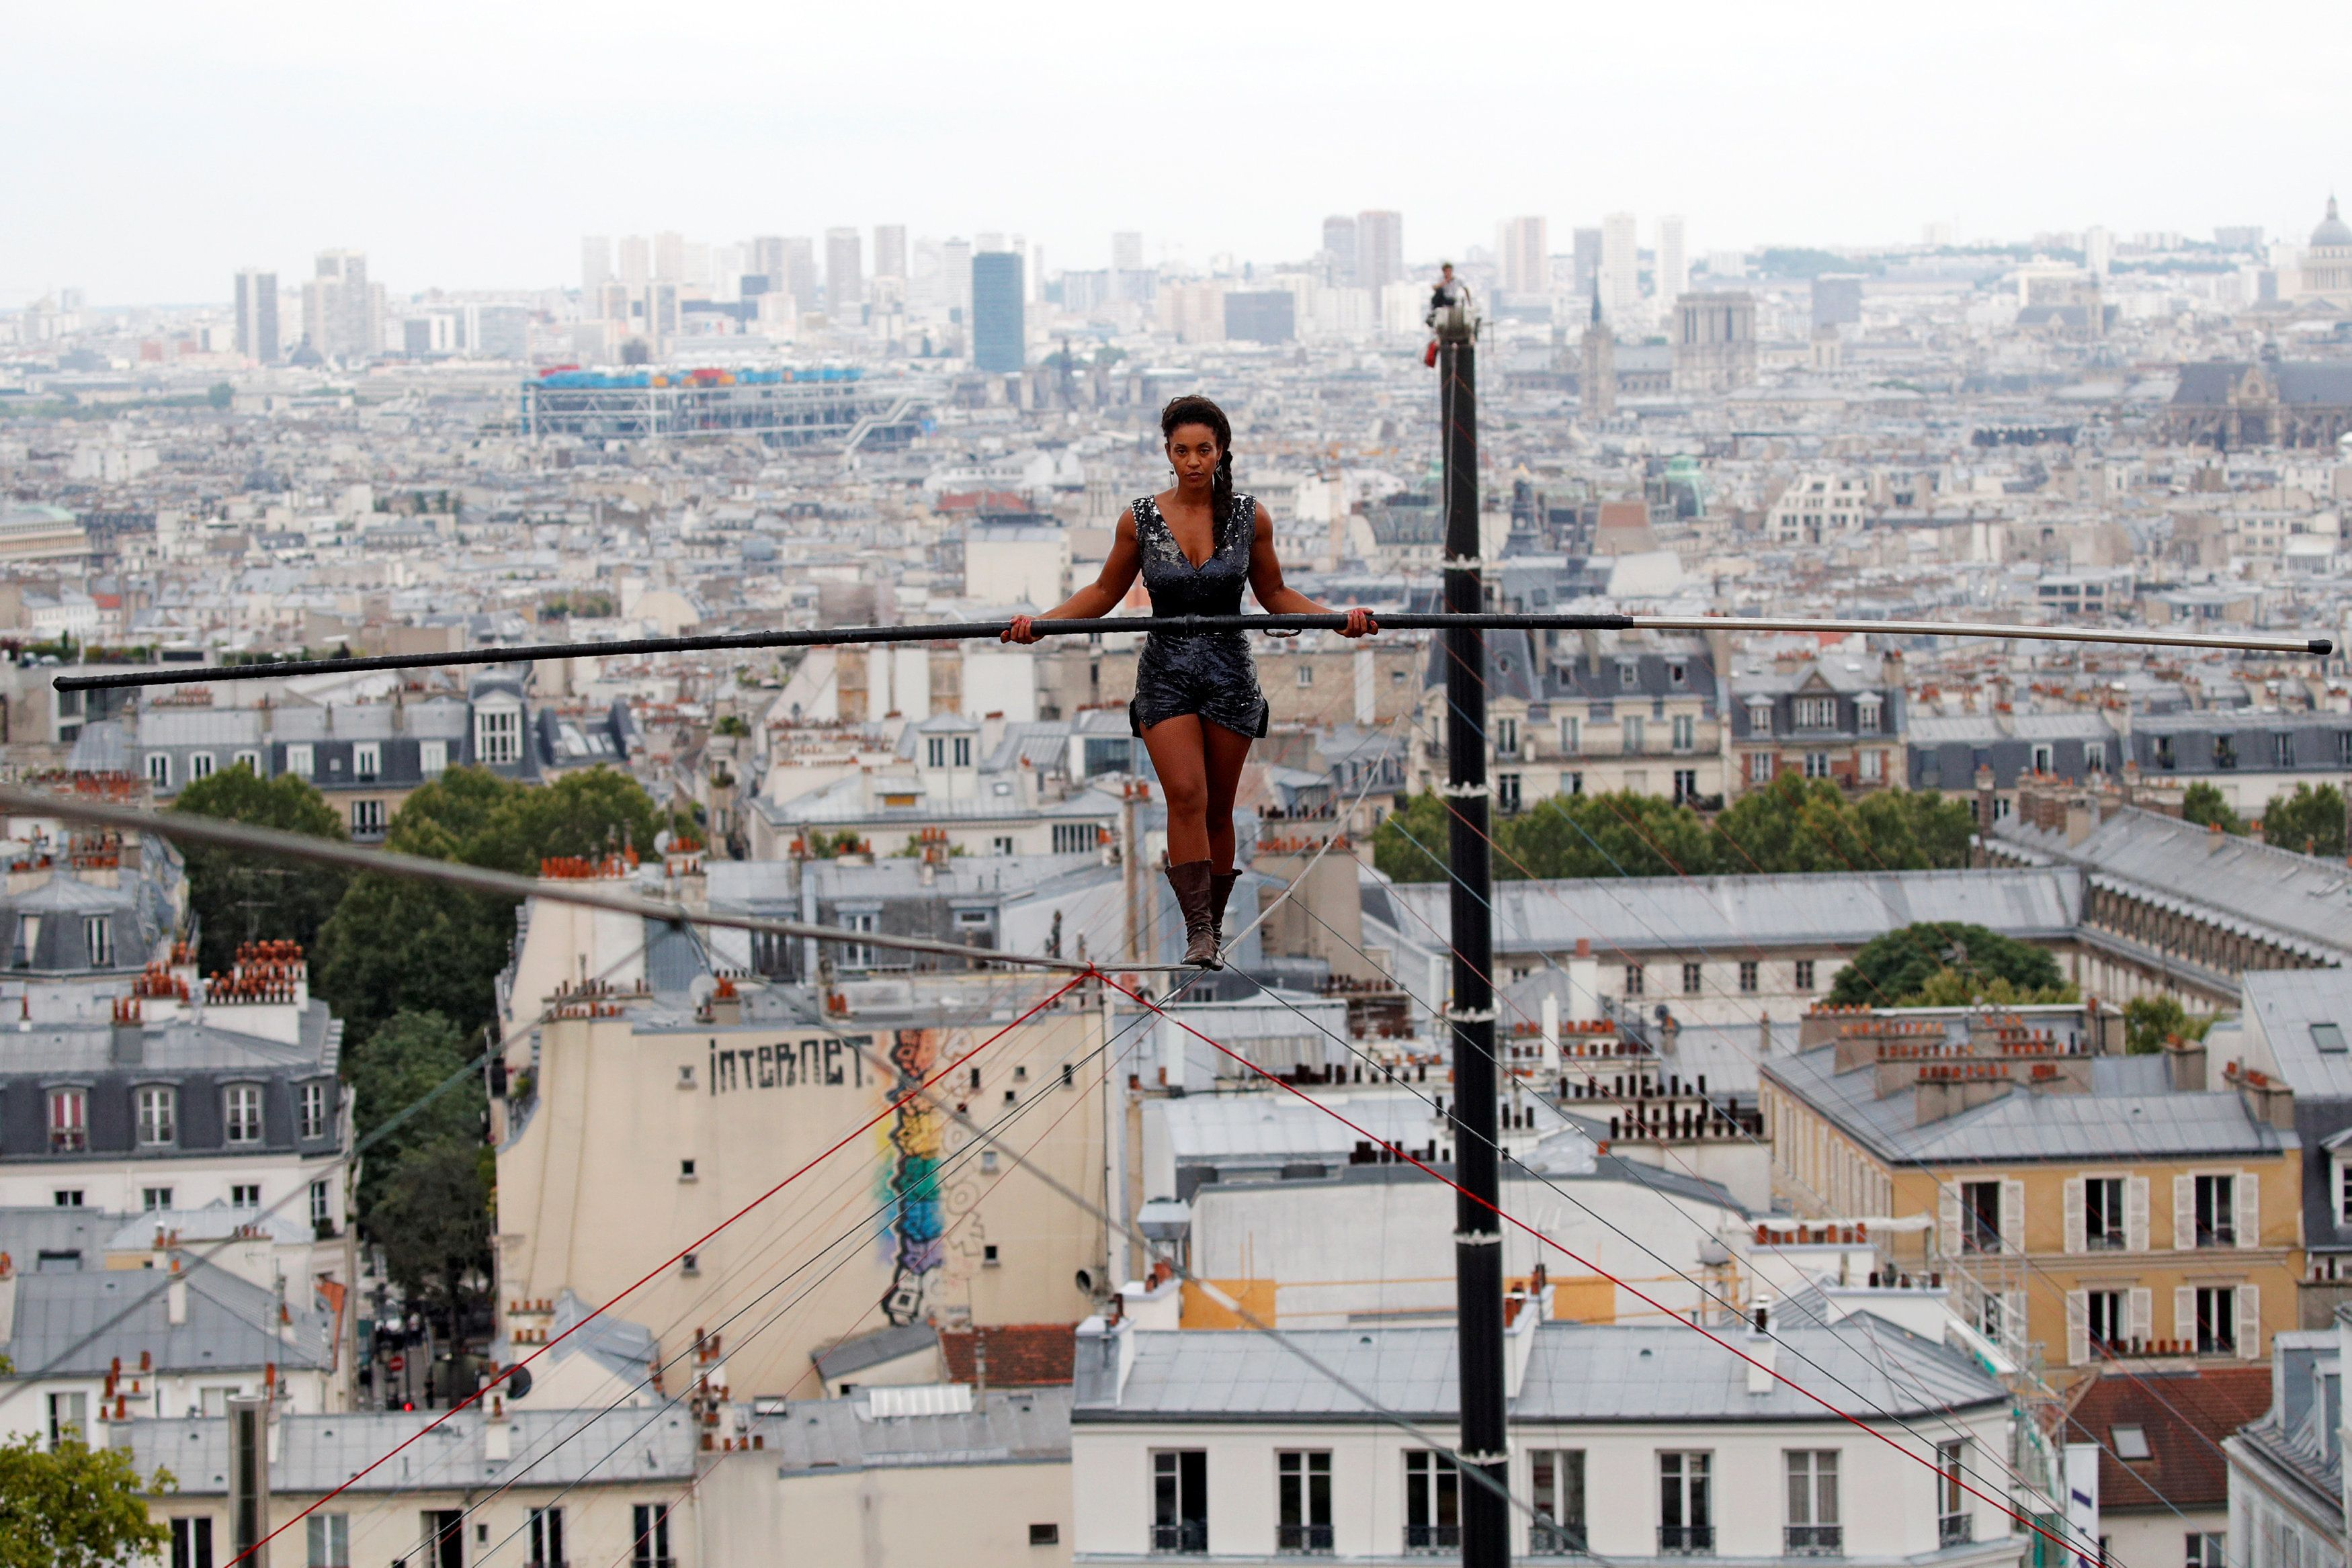 Tightrope walker Tatian-Mosio Bongonga advances on a tightrope as she scales the Monmartre hill towards the Sacre Coeur Basilica (not pictured) in Paris, France, July 20, 2018.   REUTERS/Philippe Wojazer